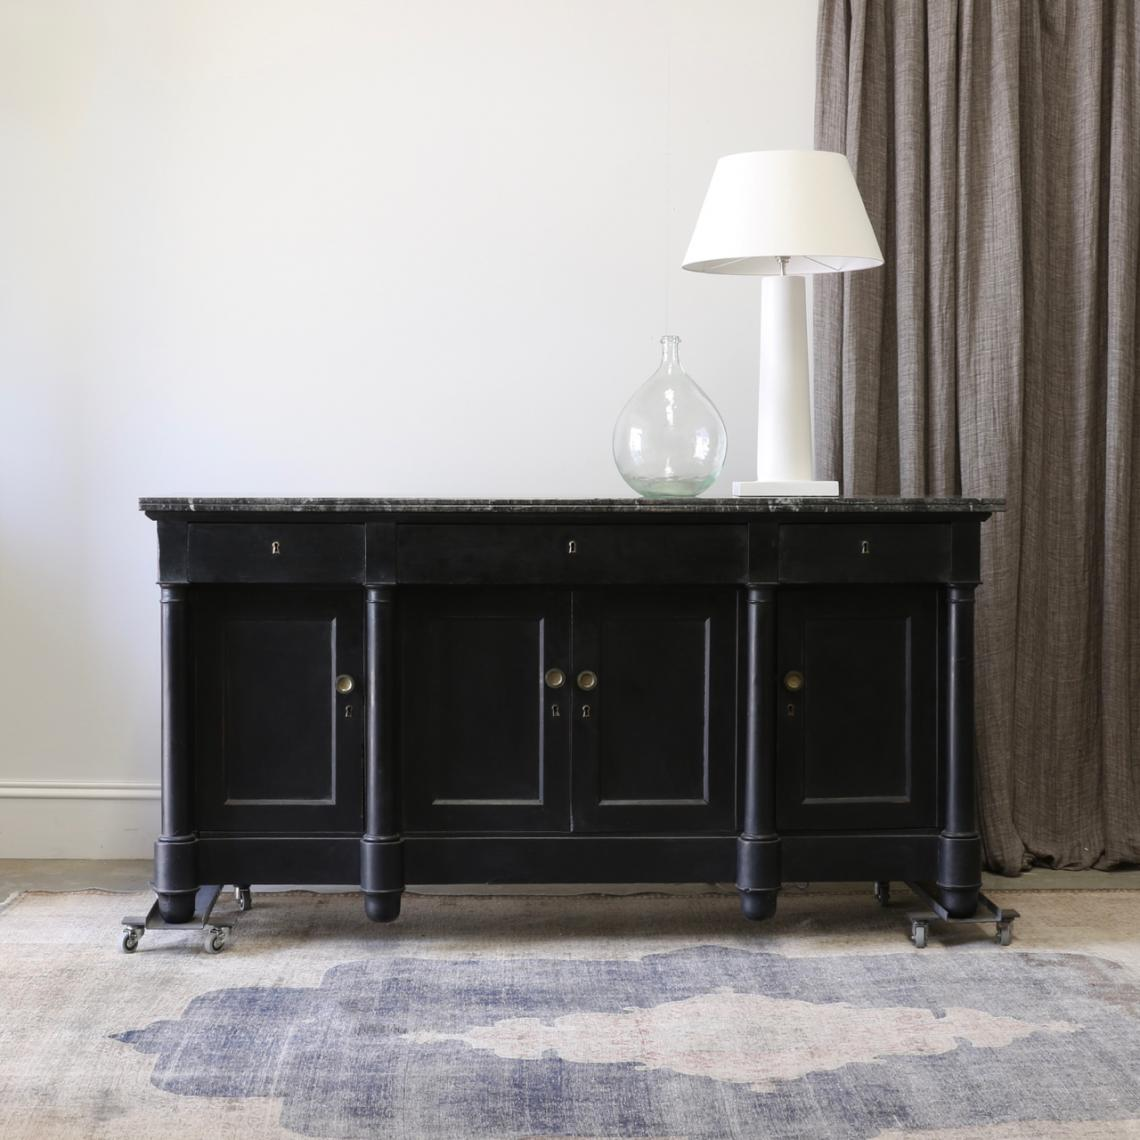 113-37 - Ebonised Enfilade